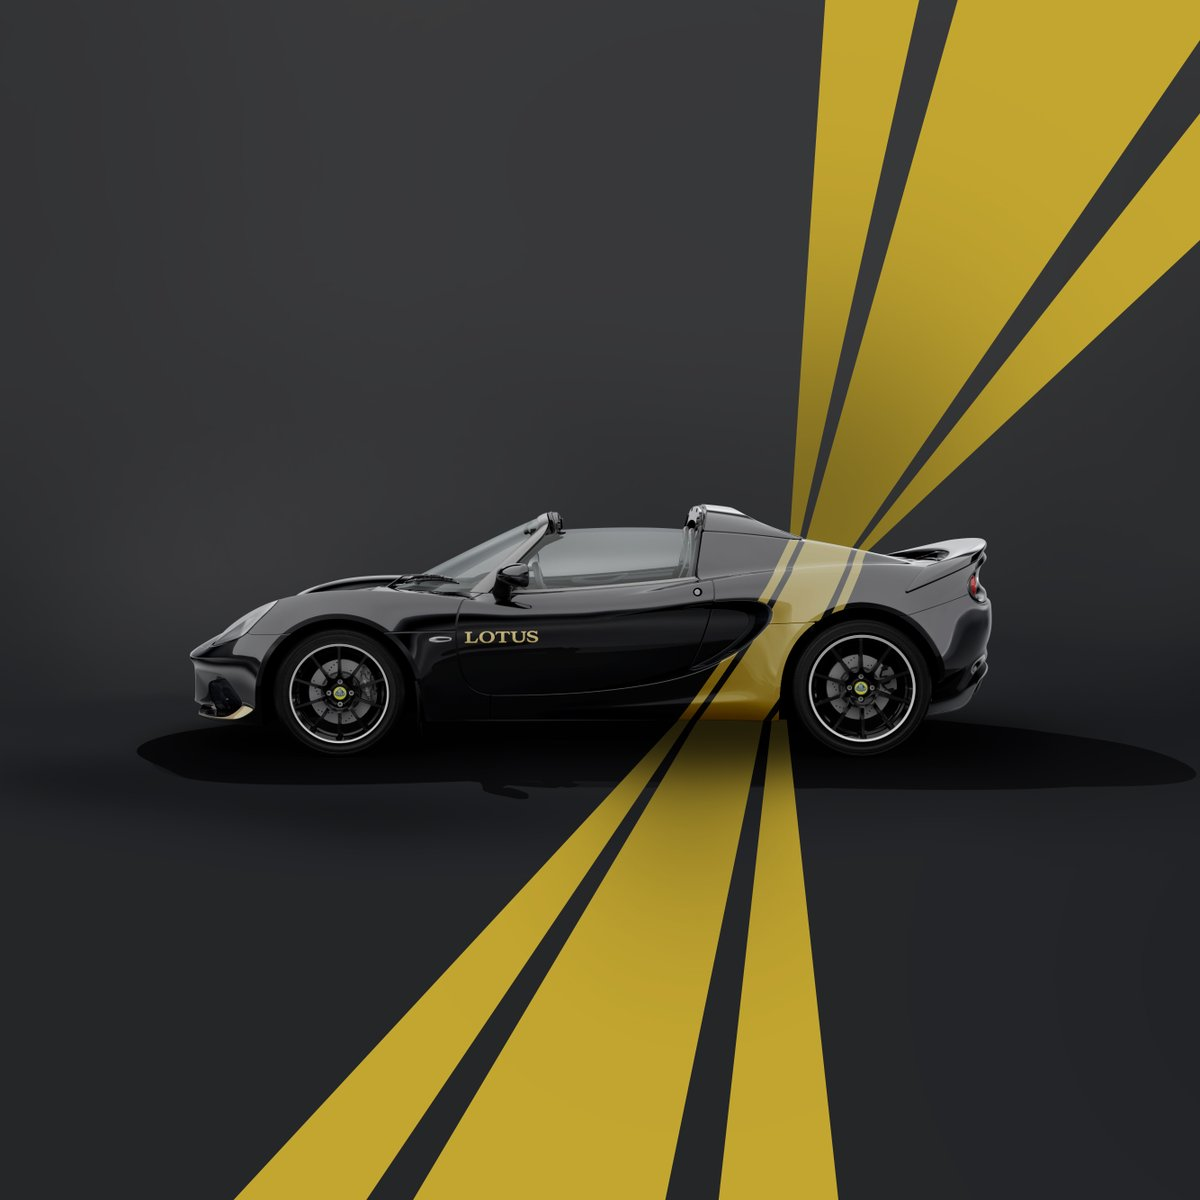 The unique colour schemes of the Elise Heritage Editions. https://t.co/6vDRF0qpOy #ForTheDrivers Elise Sport 220 Heritage Edition: Fuel consumption combined: 7.9 l/100 km; CO2 emissions combined 179 g/km https://t.co/gIAukhdQ53